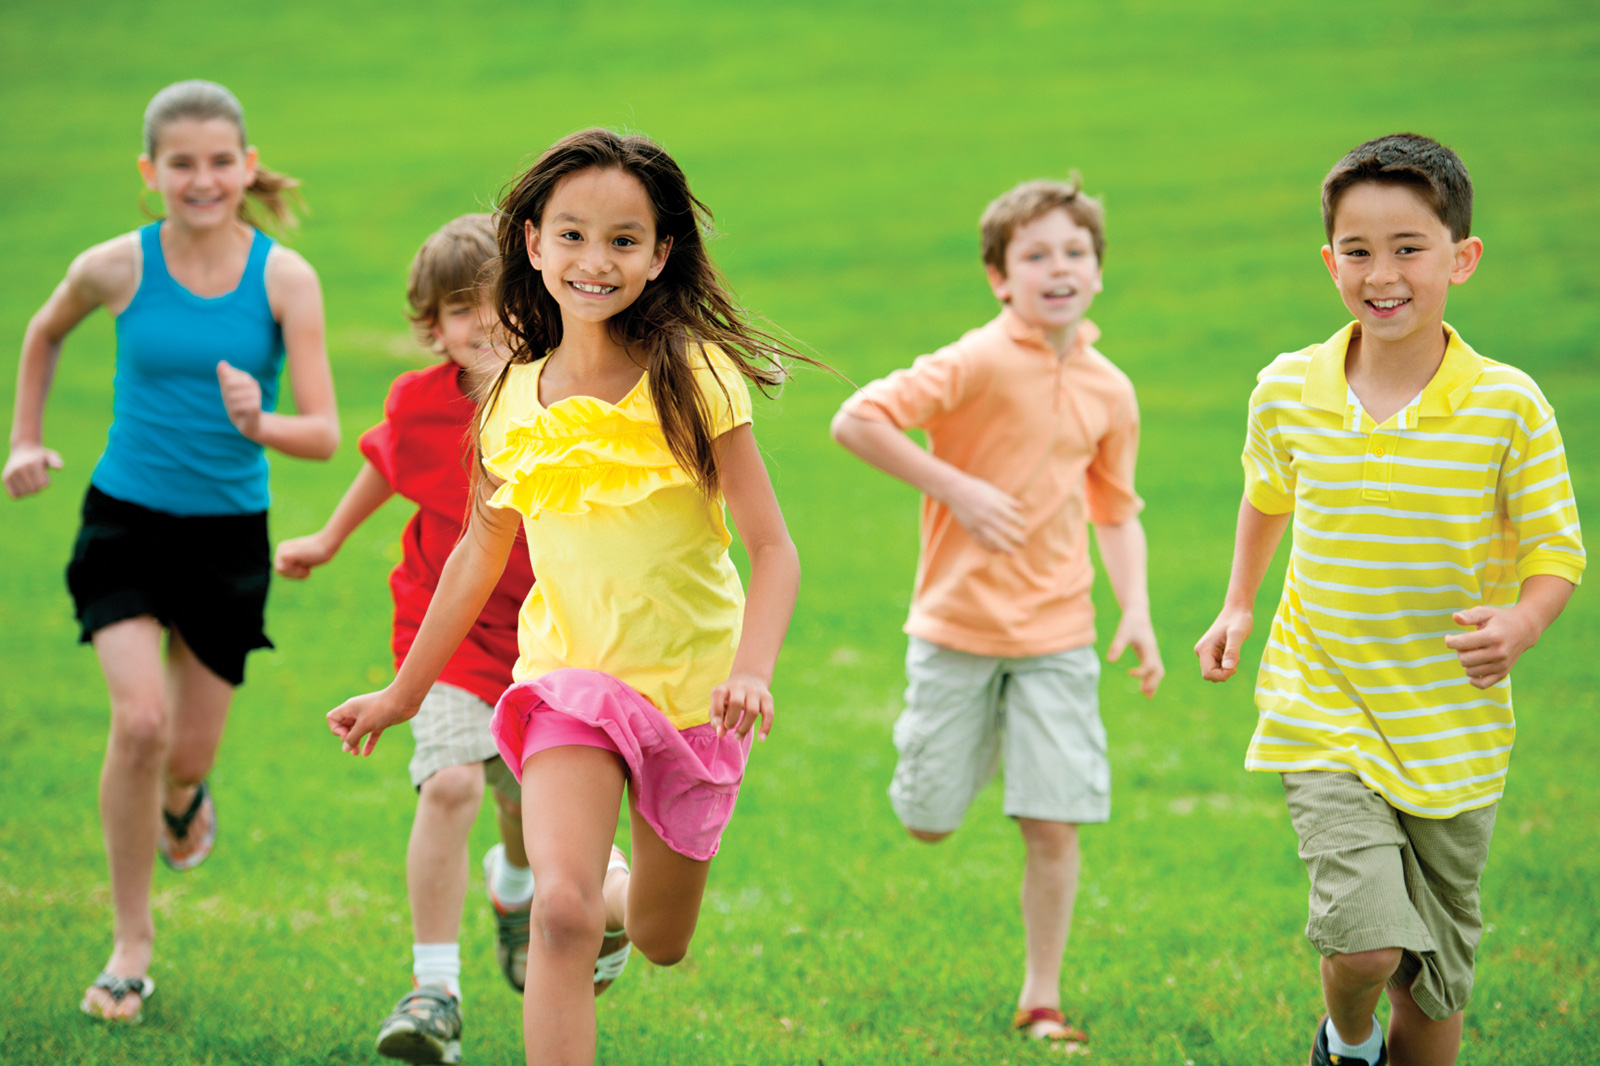 Children in bright clothing running on green grass field